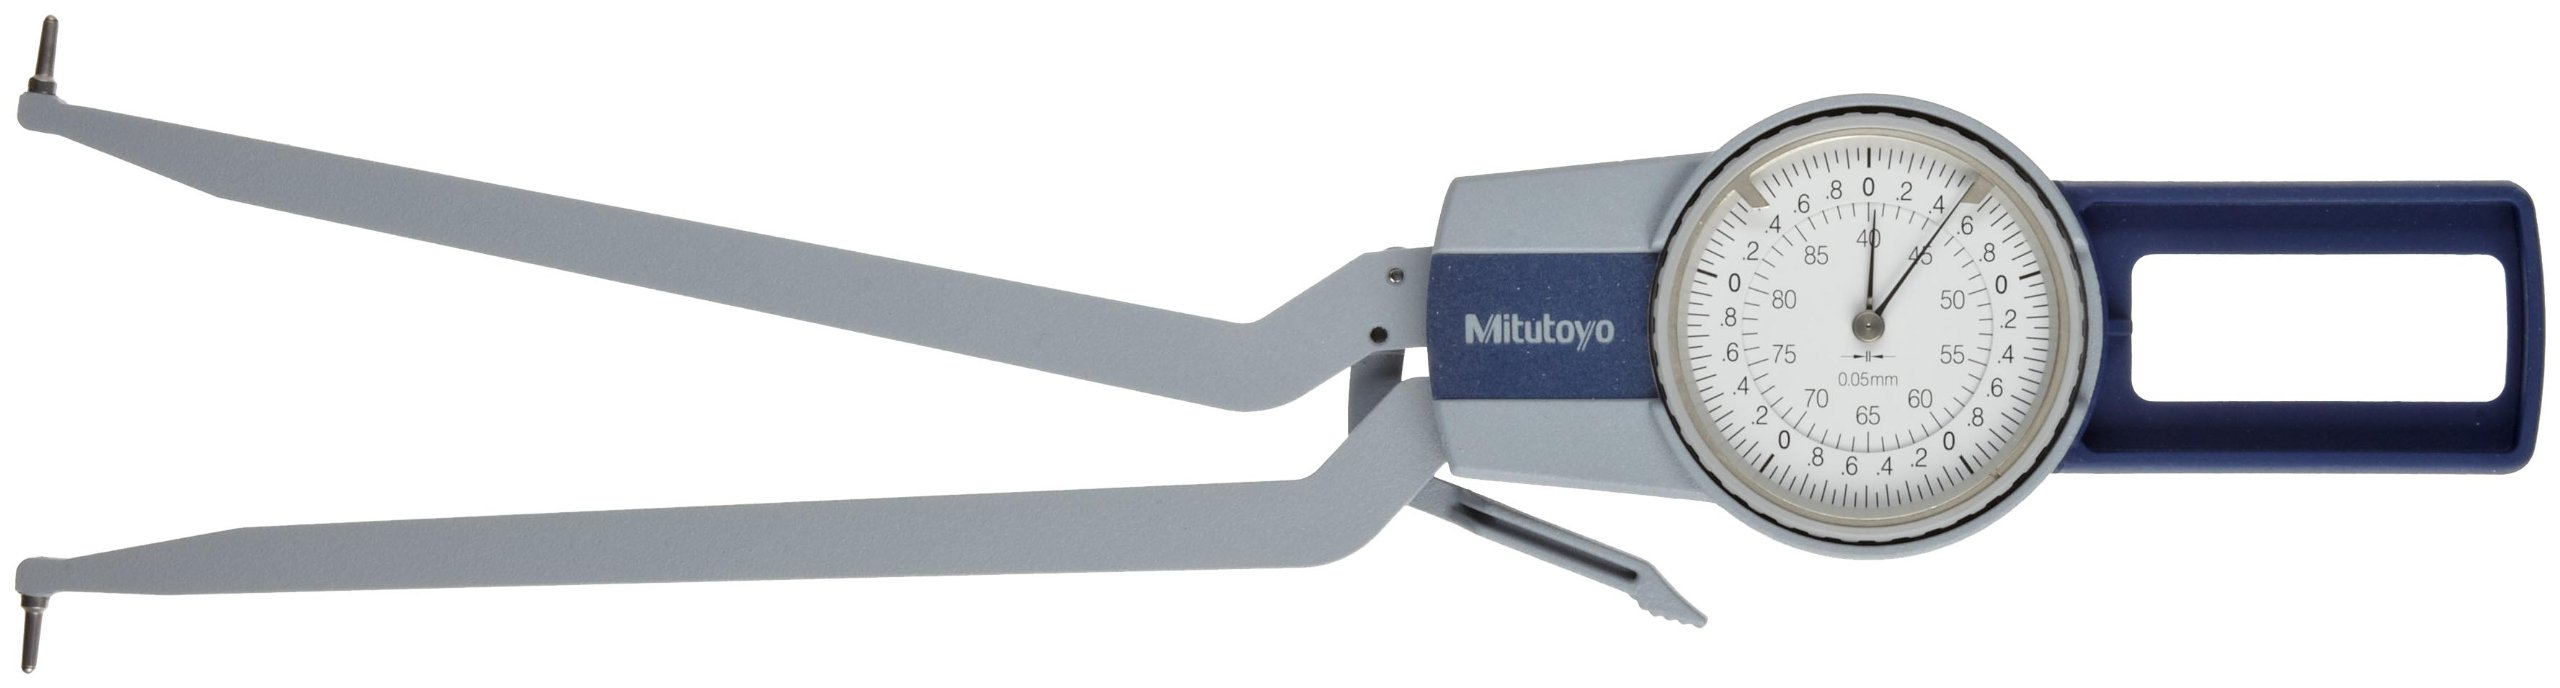 Mitutoyo 209-300 Caliper Gauge, Pointed Jaw, White Face, 2.5-12.5mm Range, +/-0.015mm Accuracy, 0.005mm Resolution, Meets IP65 Specifications by Mitutoyo